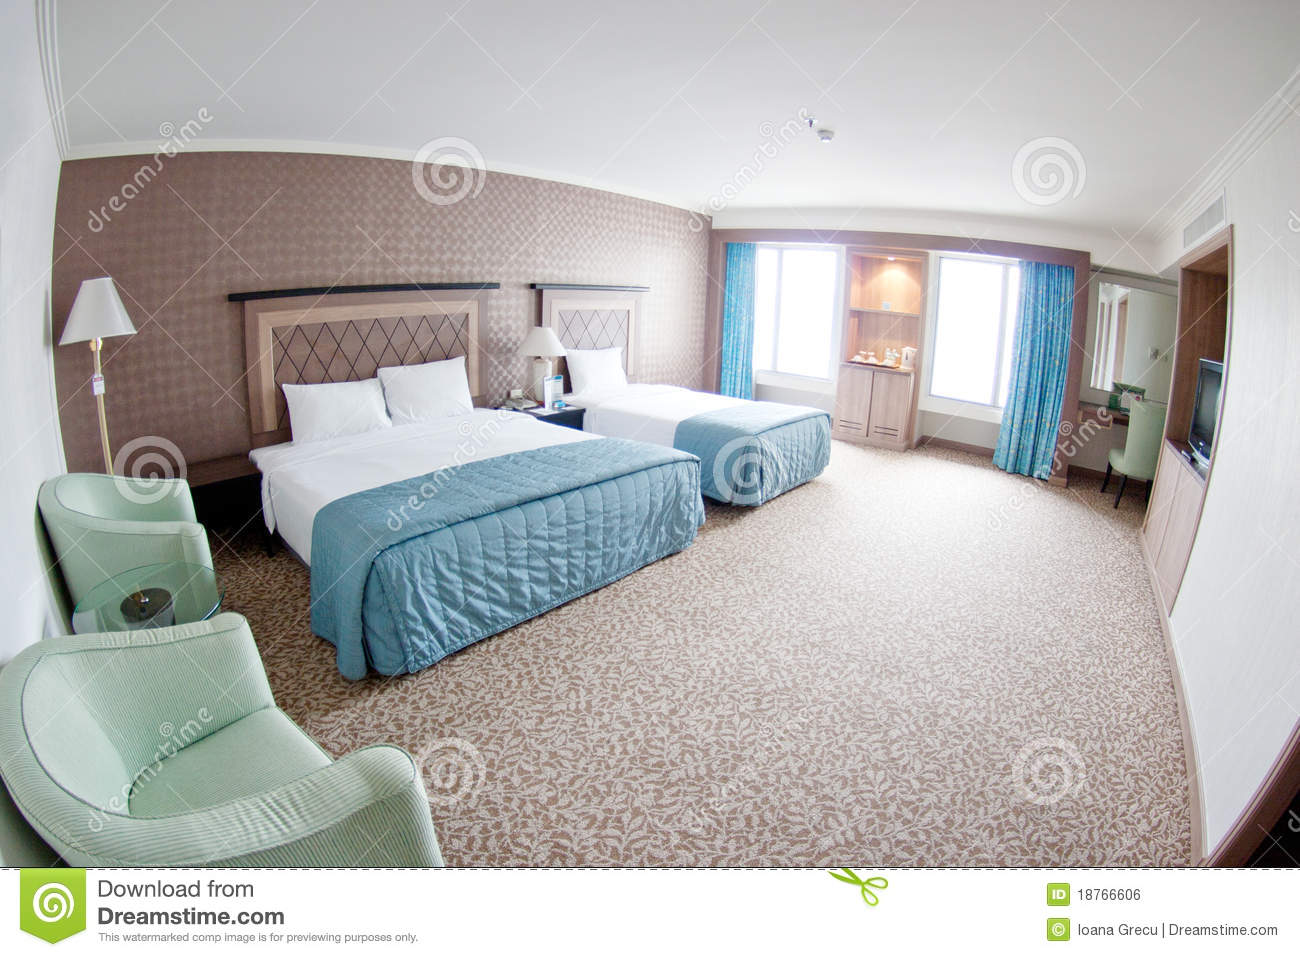 Modern Hotel Room modern hotel room royalty free stock photo - image: 35091015